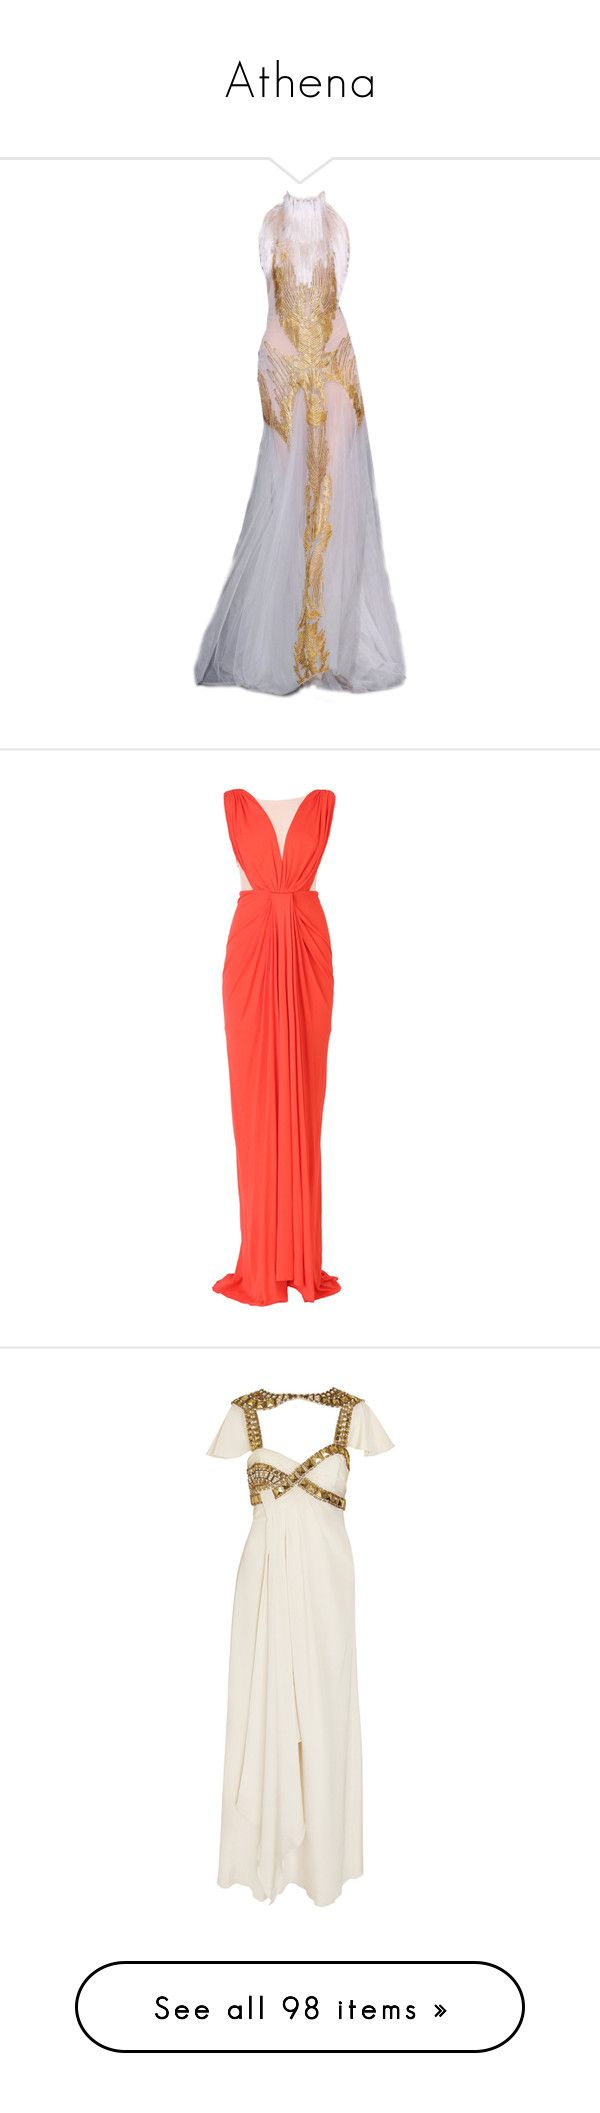 """Athena"" by mlleemilee ❤ liked on Polyvore featuring dresses, gowns, long dresses, evening gowns, jersey dress, coral red dress, long red evening dress, red ball gown, red jersey dress and long dress"